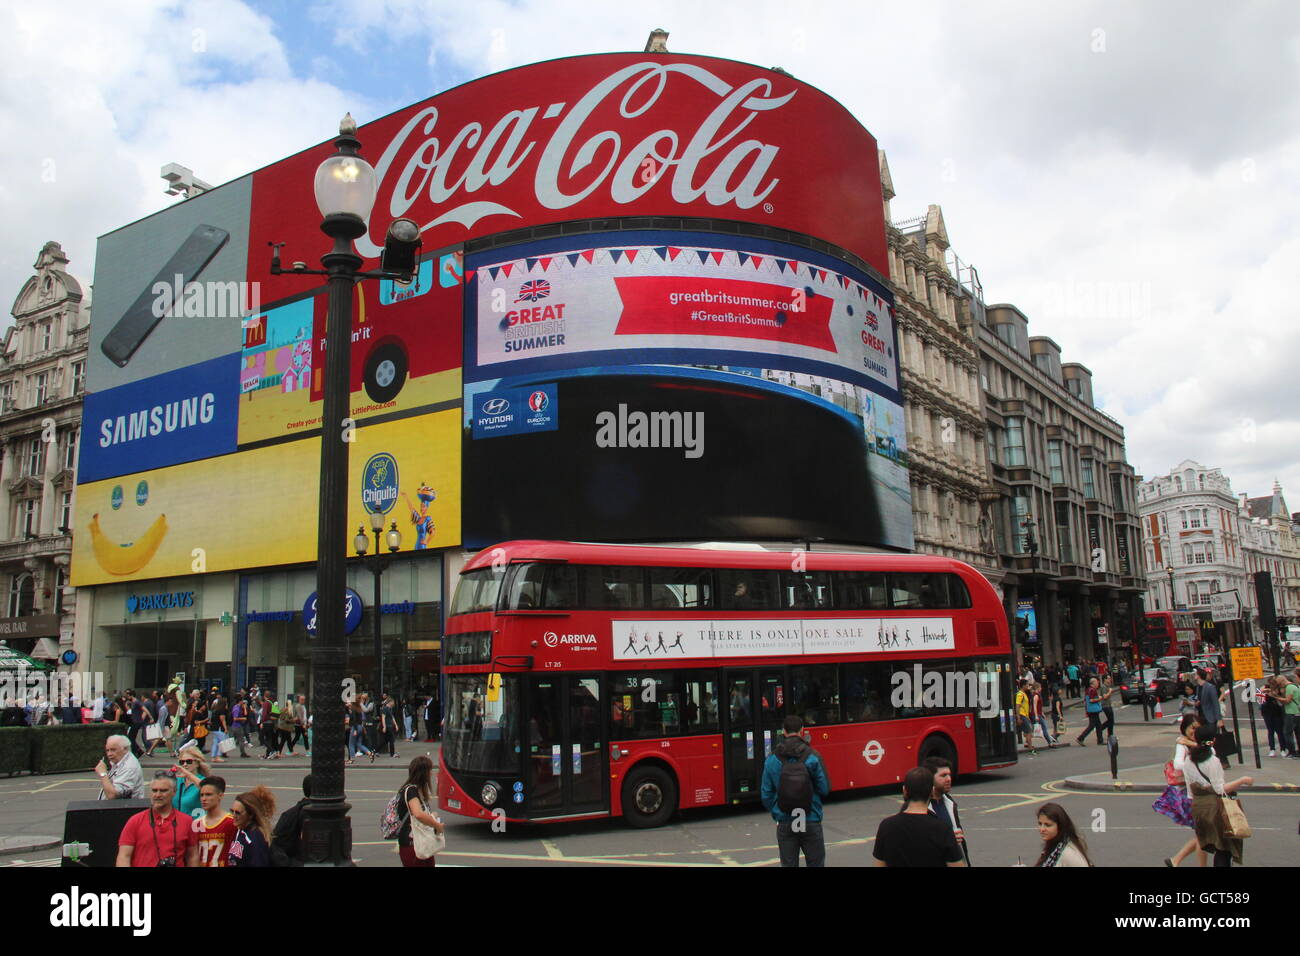 PICADILLY CIRCUS IN LONDON WITH RED LONDON NEW ROUTEMASTER BUS AND ADVERTISEMENT BOARDS - Stock Image